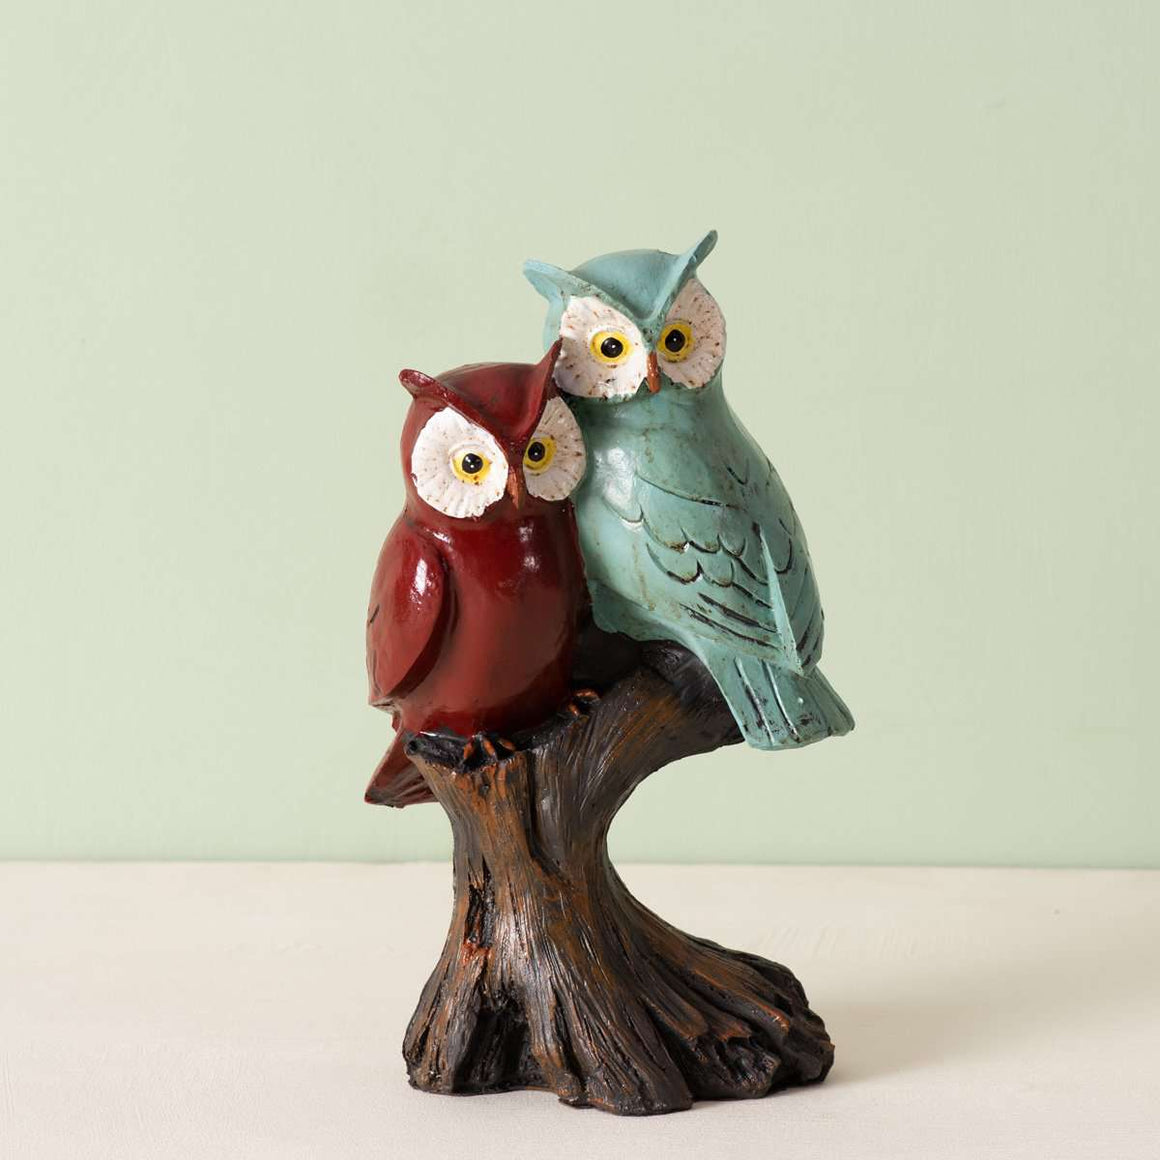 'Nightflyers' Perched Owl Sculpture